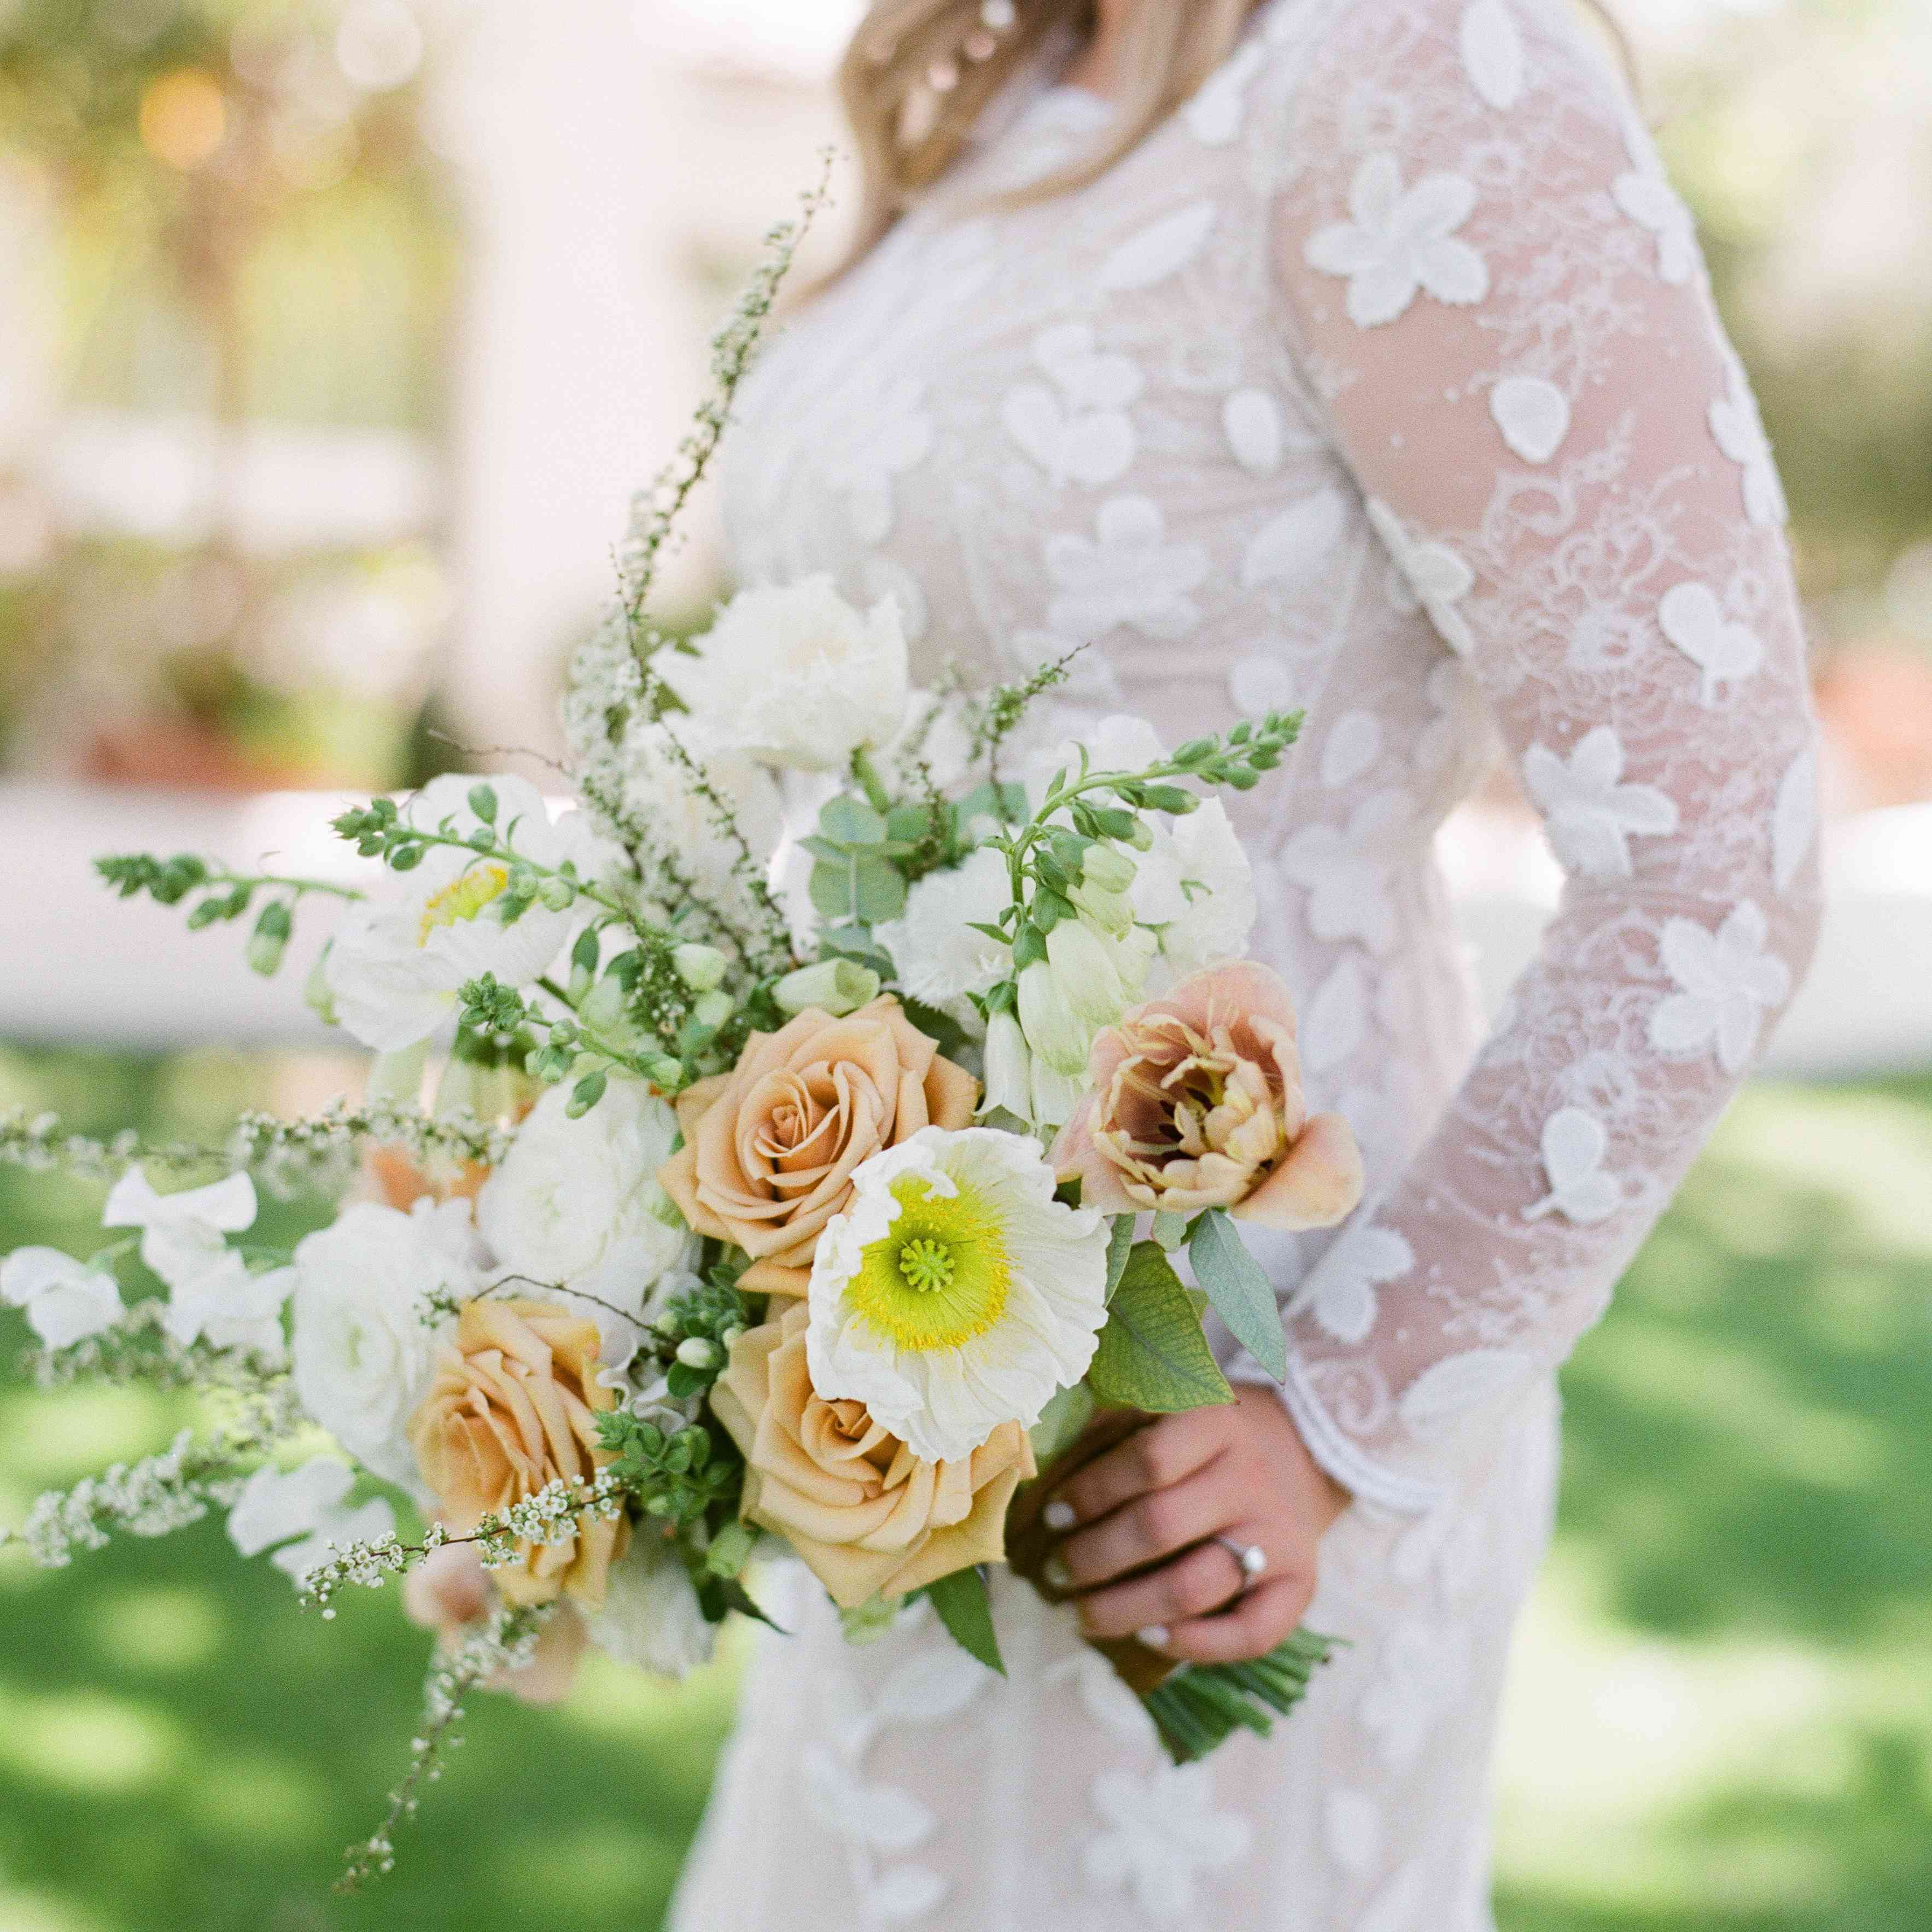 Bride outside holding a bouquet with white and peach flowers